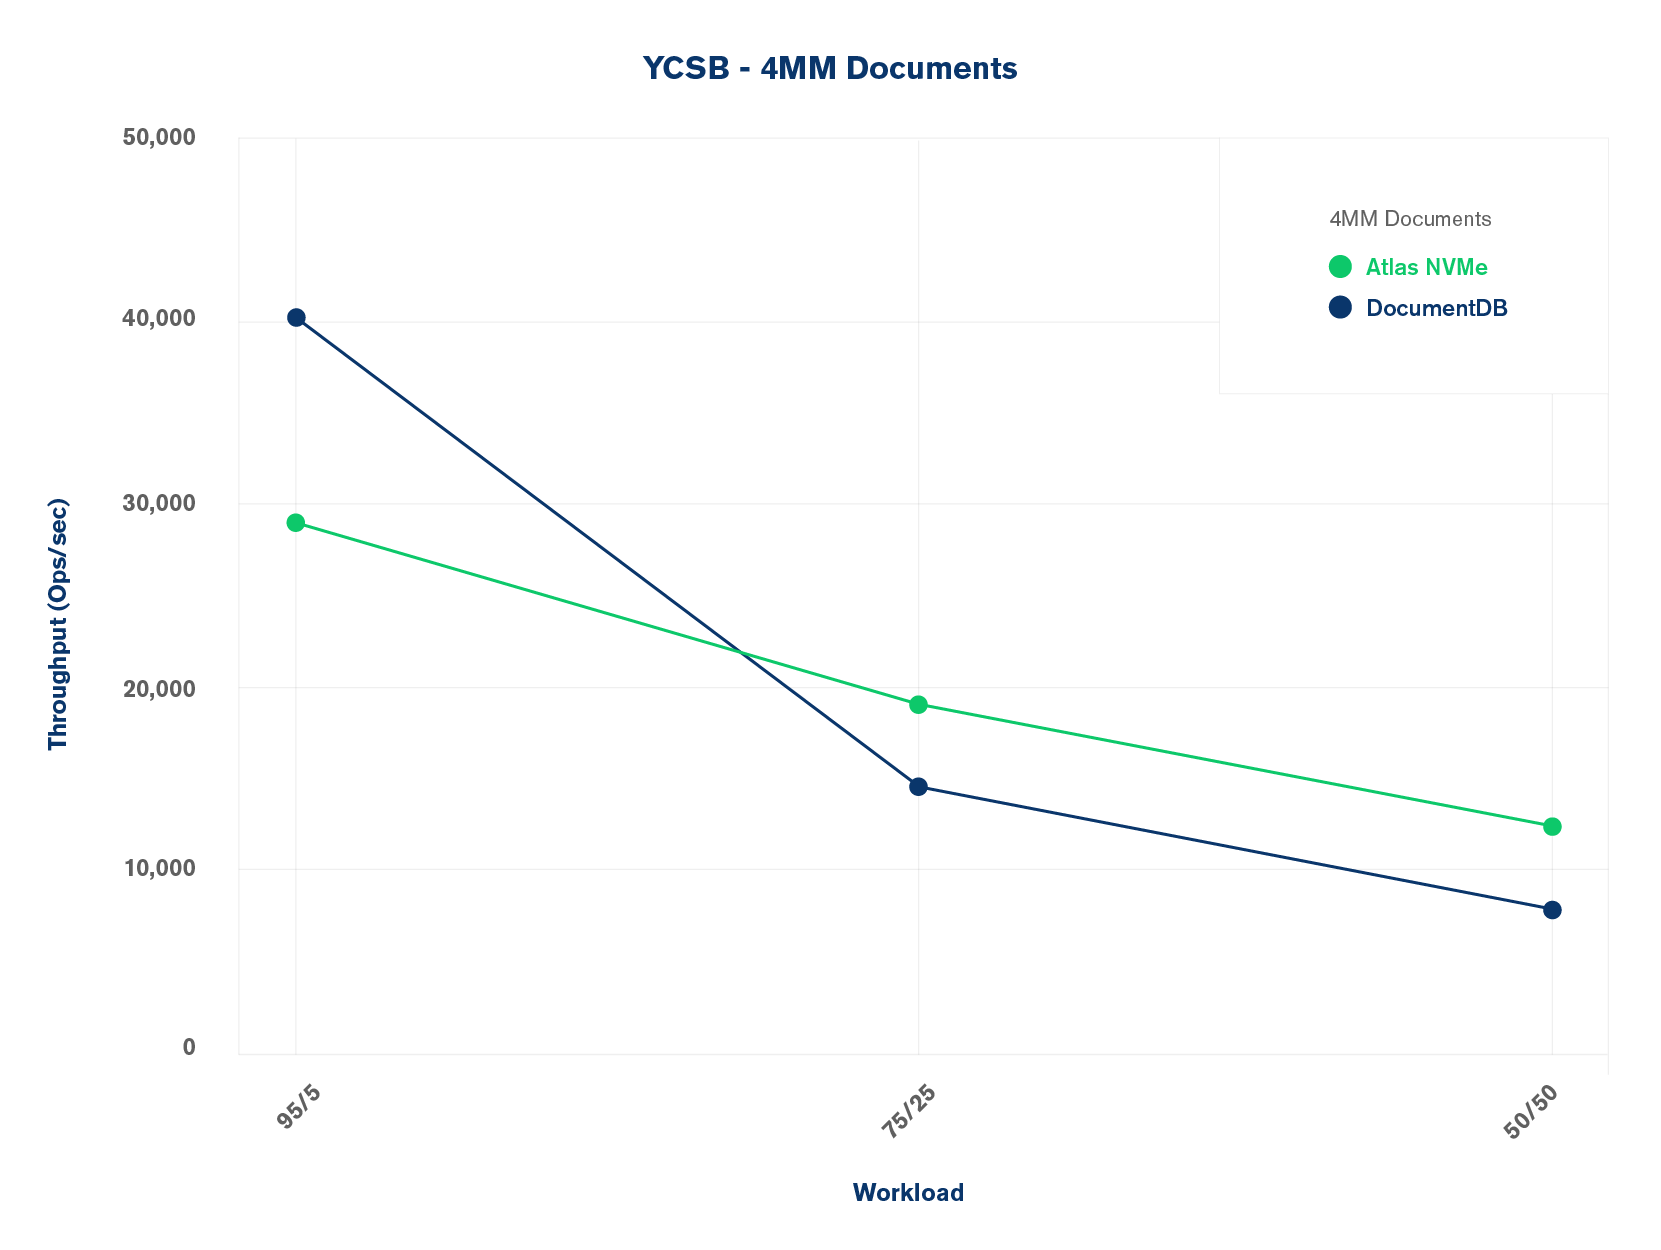 YCSB Results with 4MM Documents